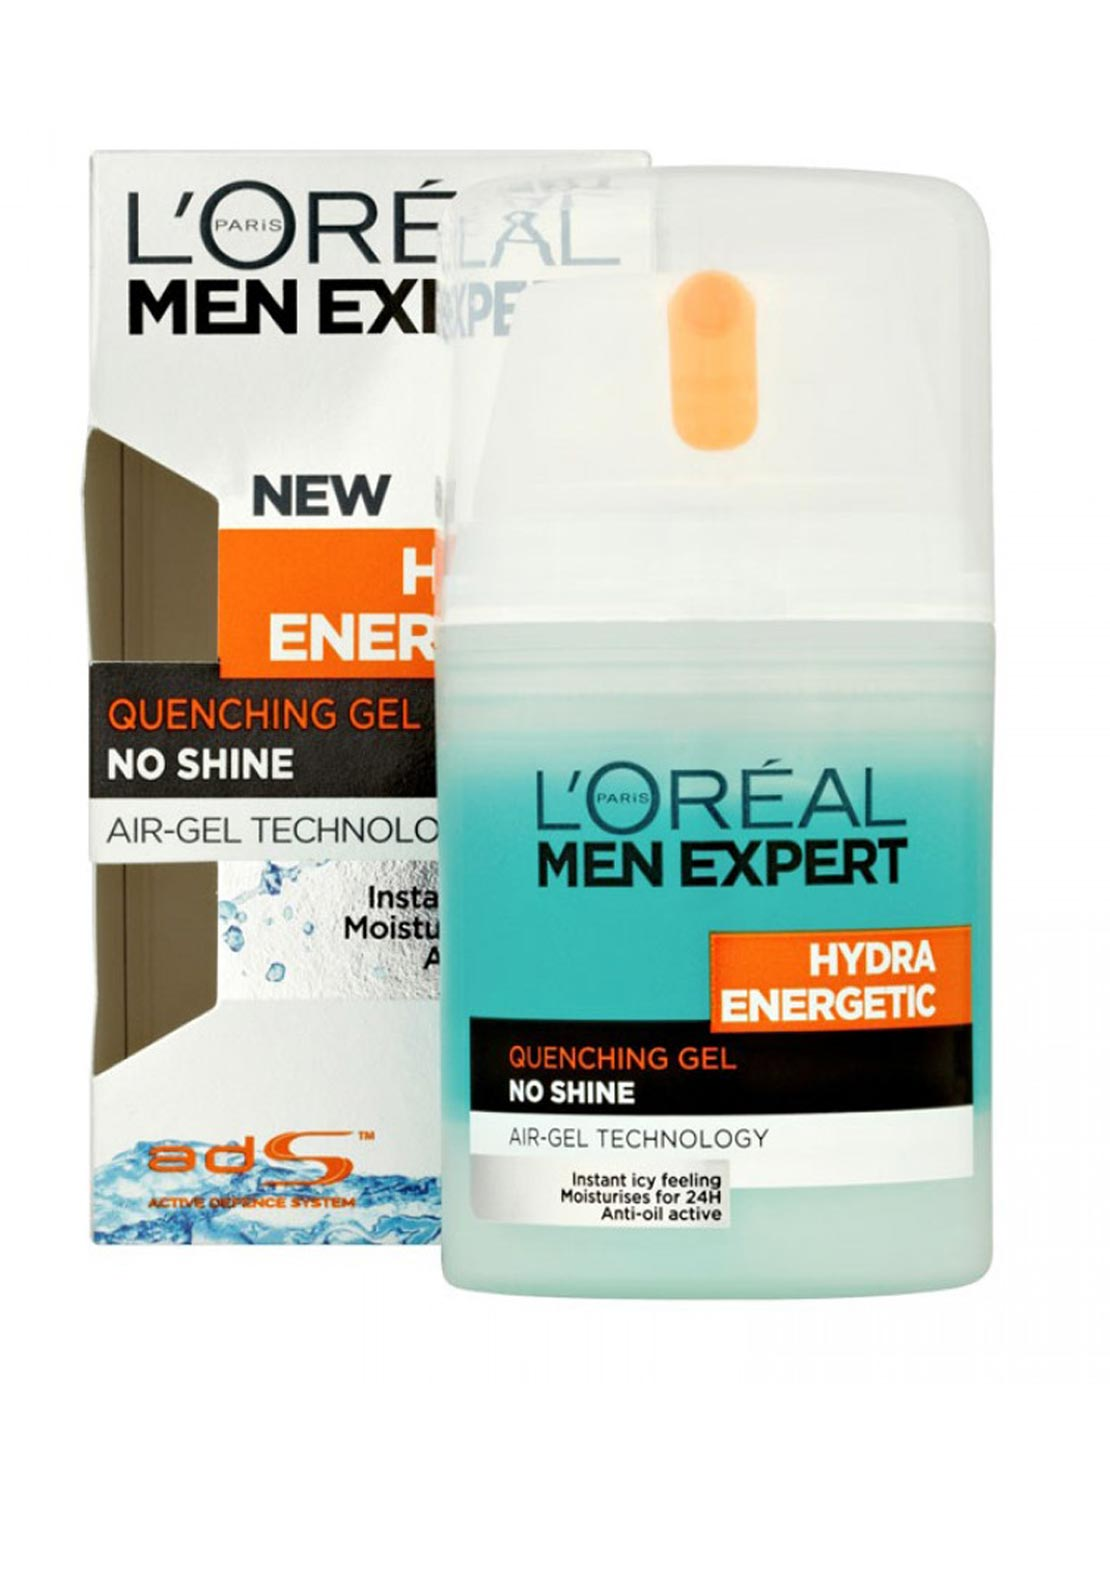 L'Oreal Men Expert Hydra Energetic Quenching Gel, 50ml